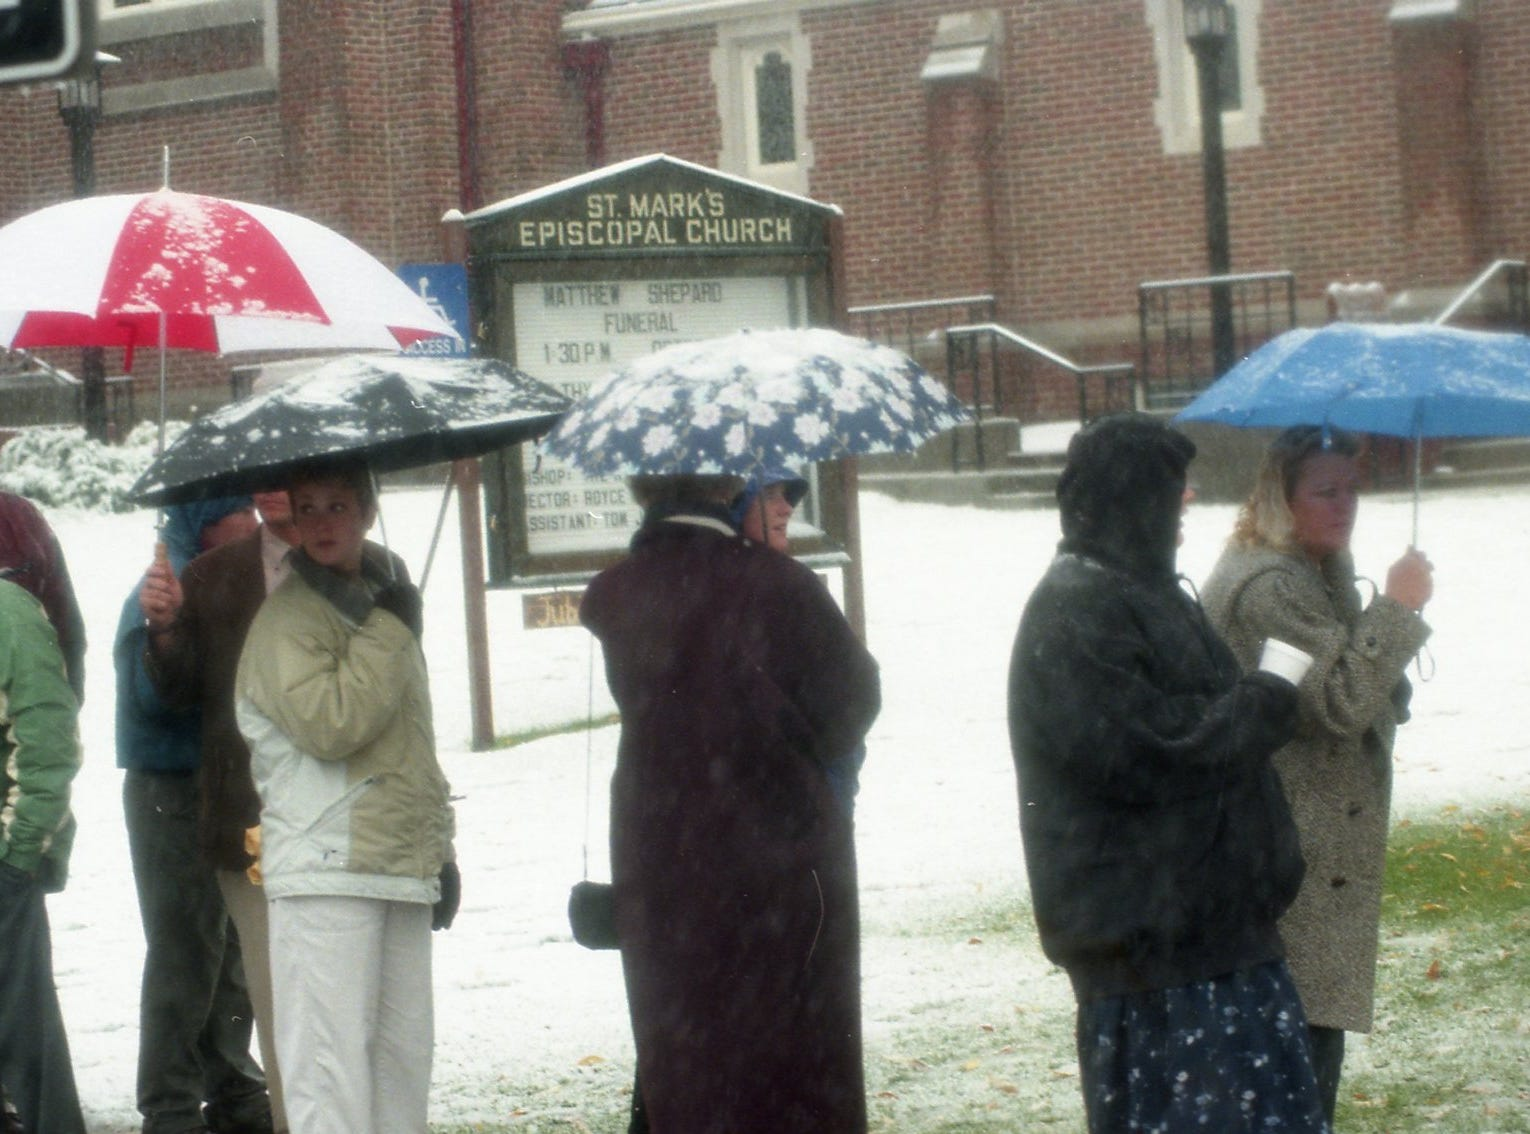 Individuals stand outside the church where Matthew Shepard's funeral was held.